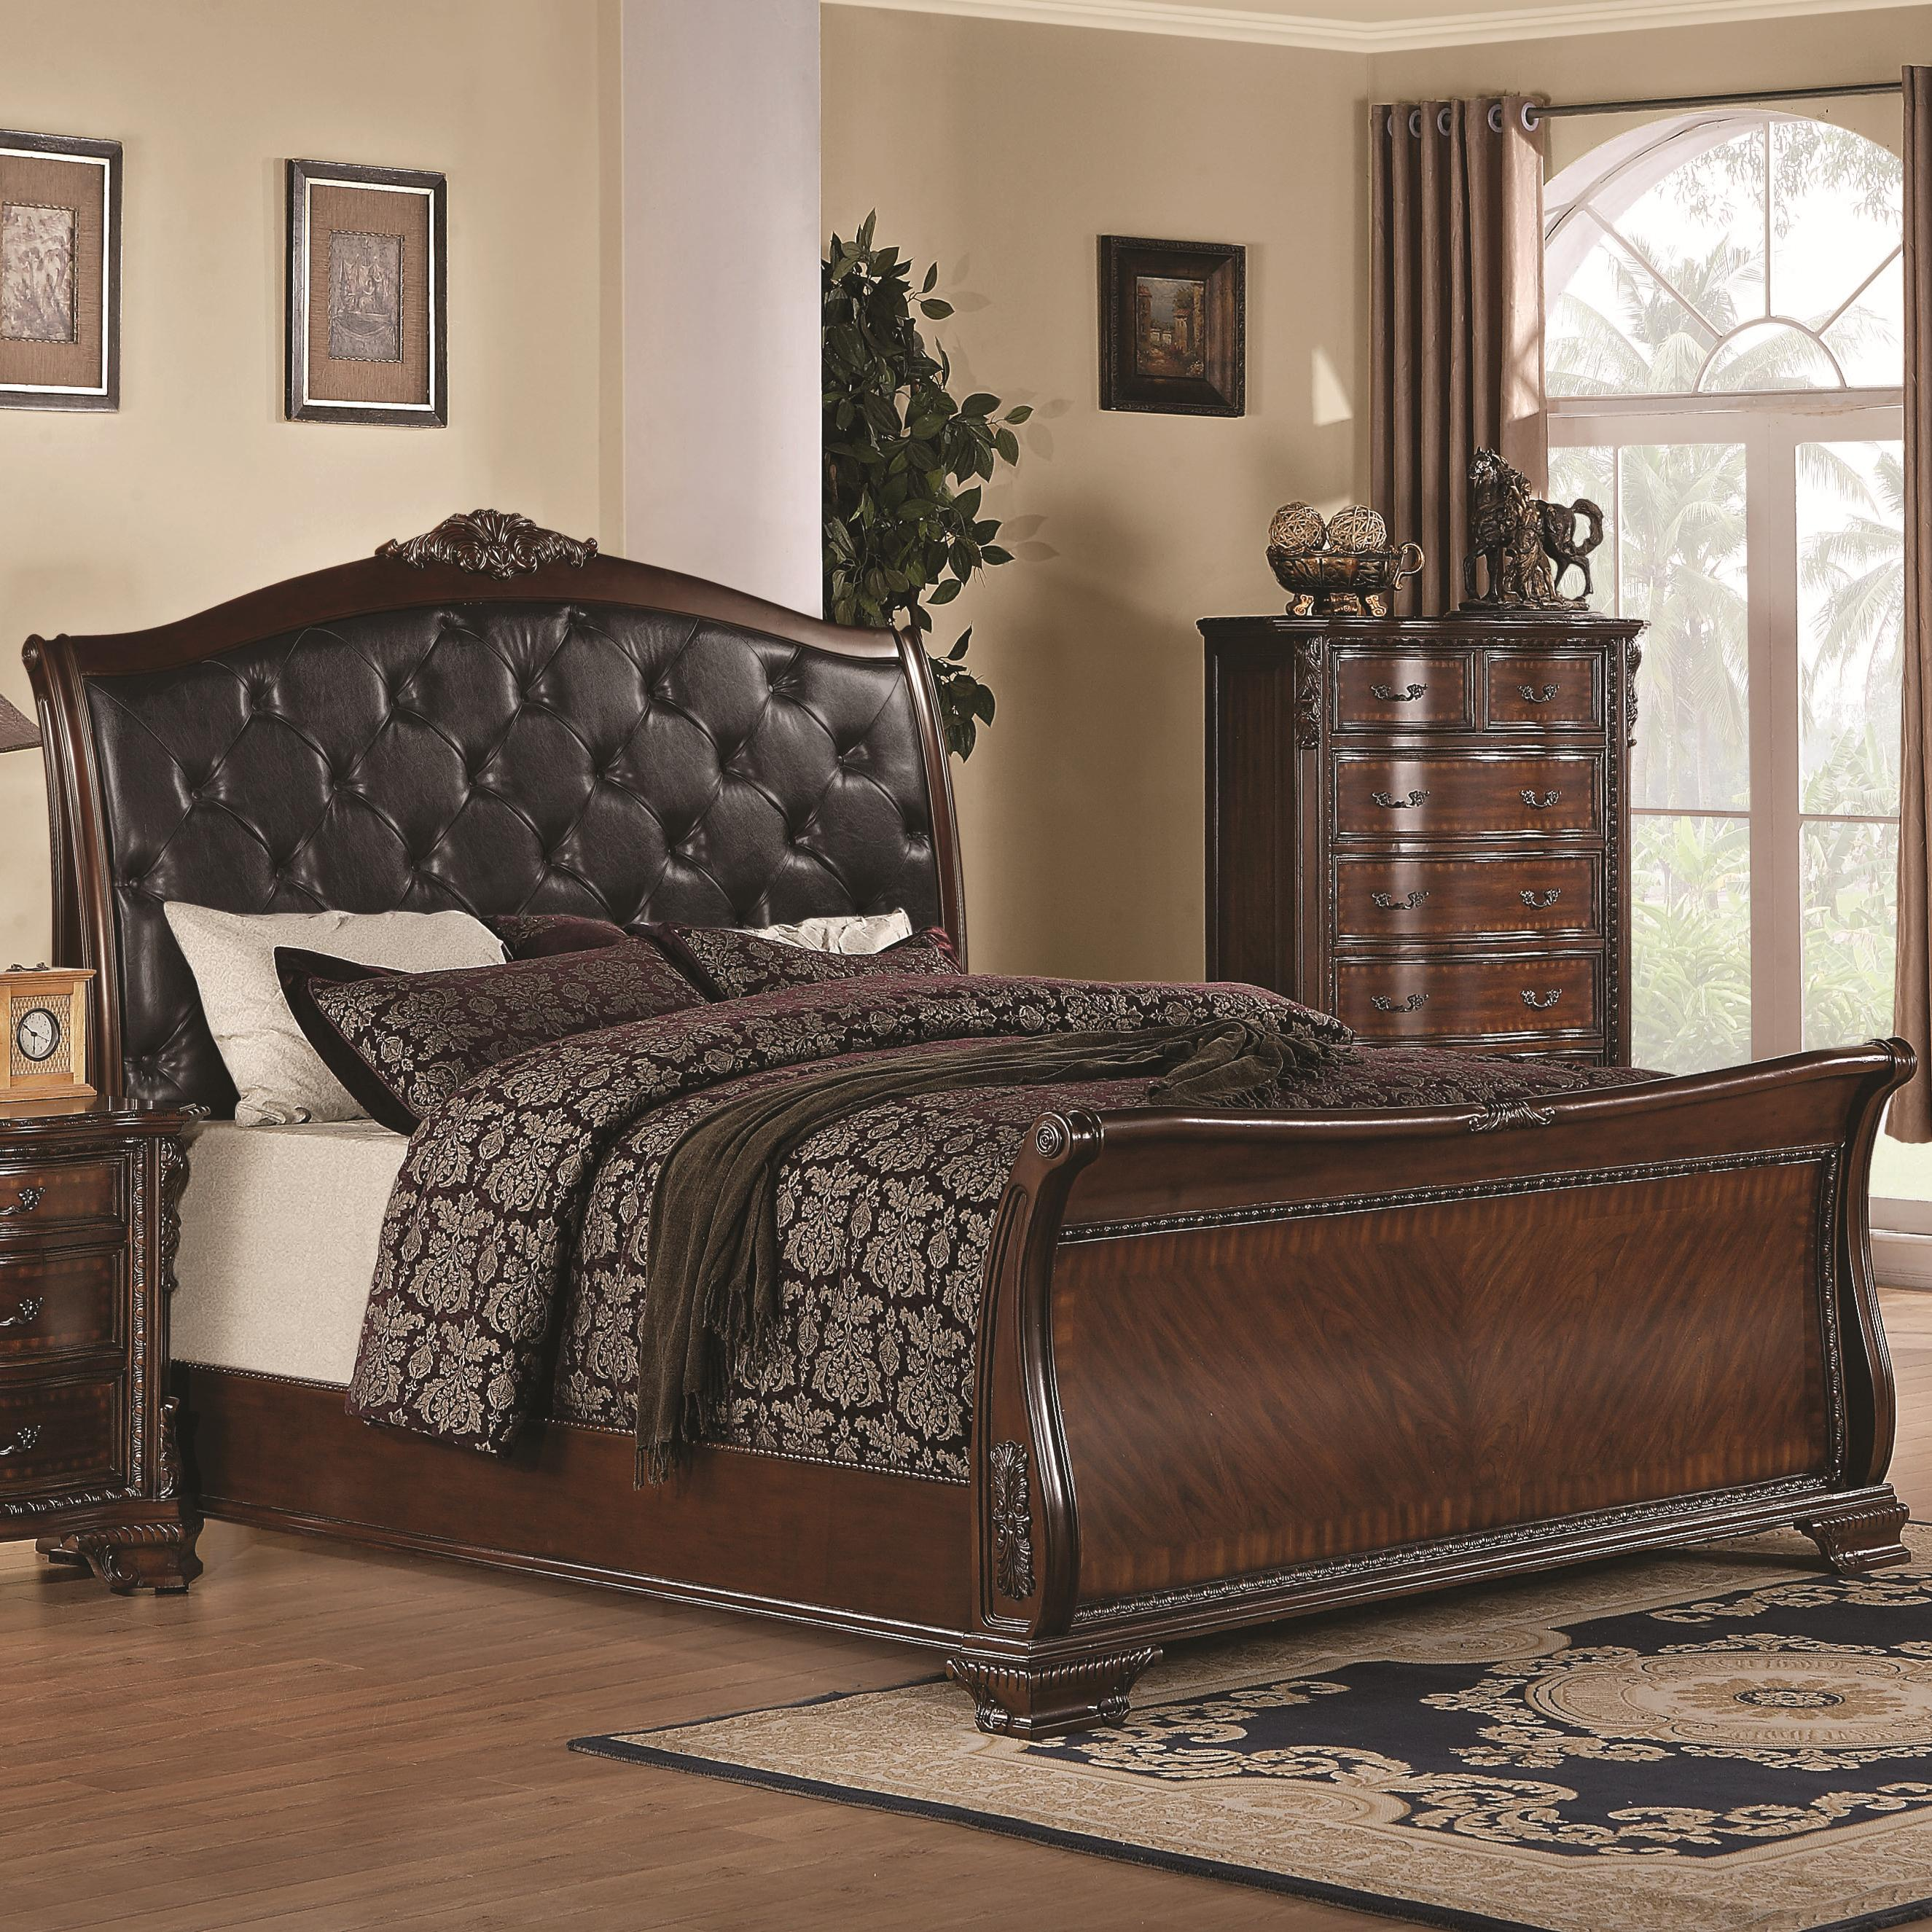 Coaster Maddison California King Bed - Item Number: 202261KW